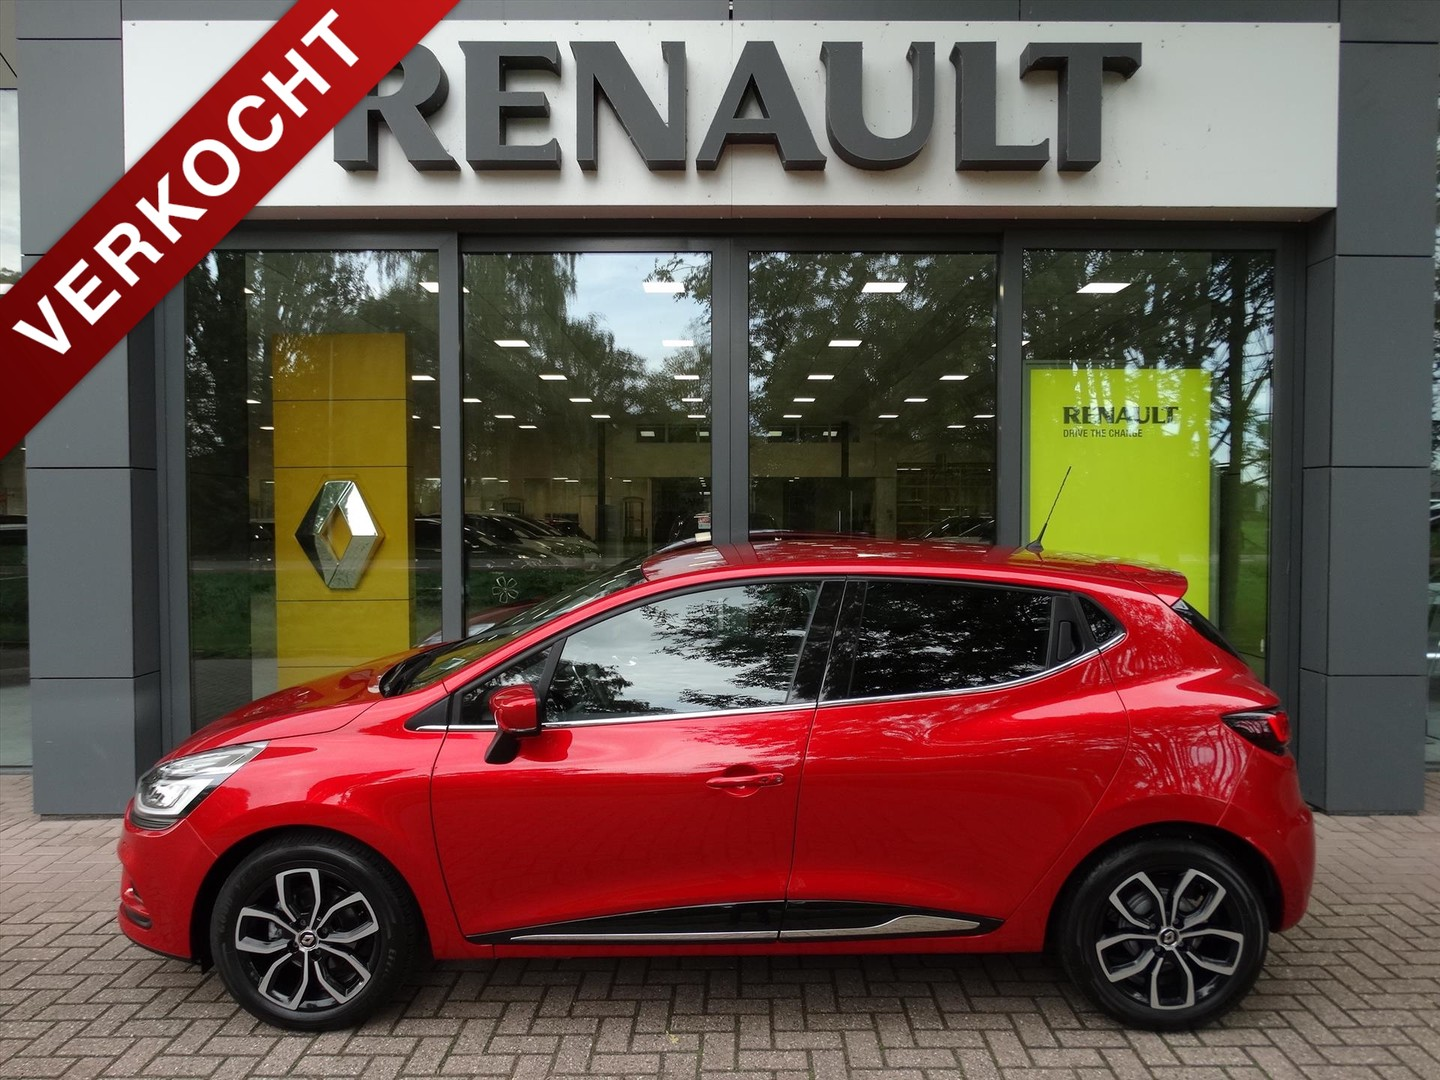 Renault Clio Tce 90 pk intens